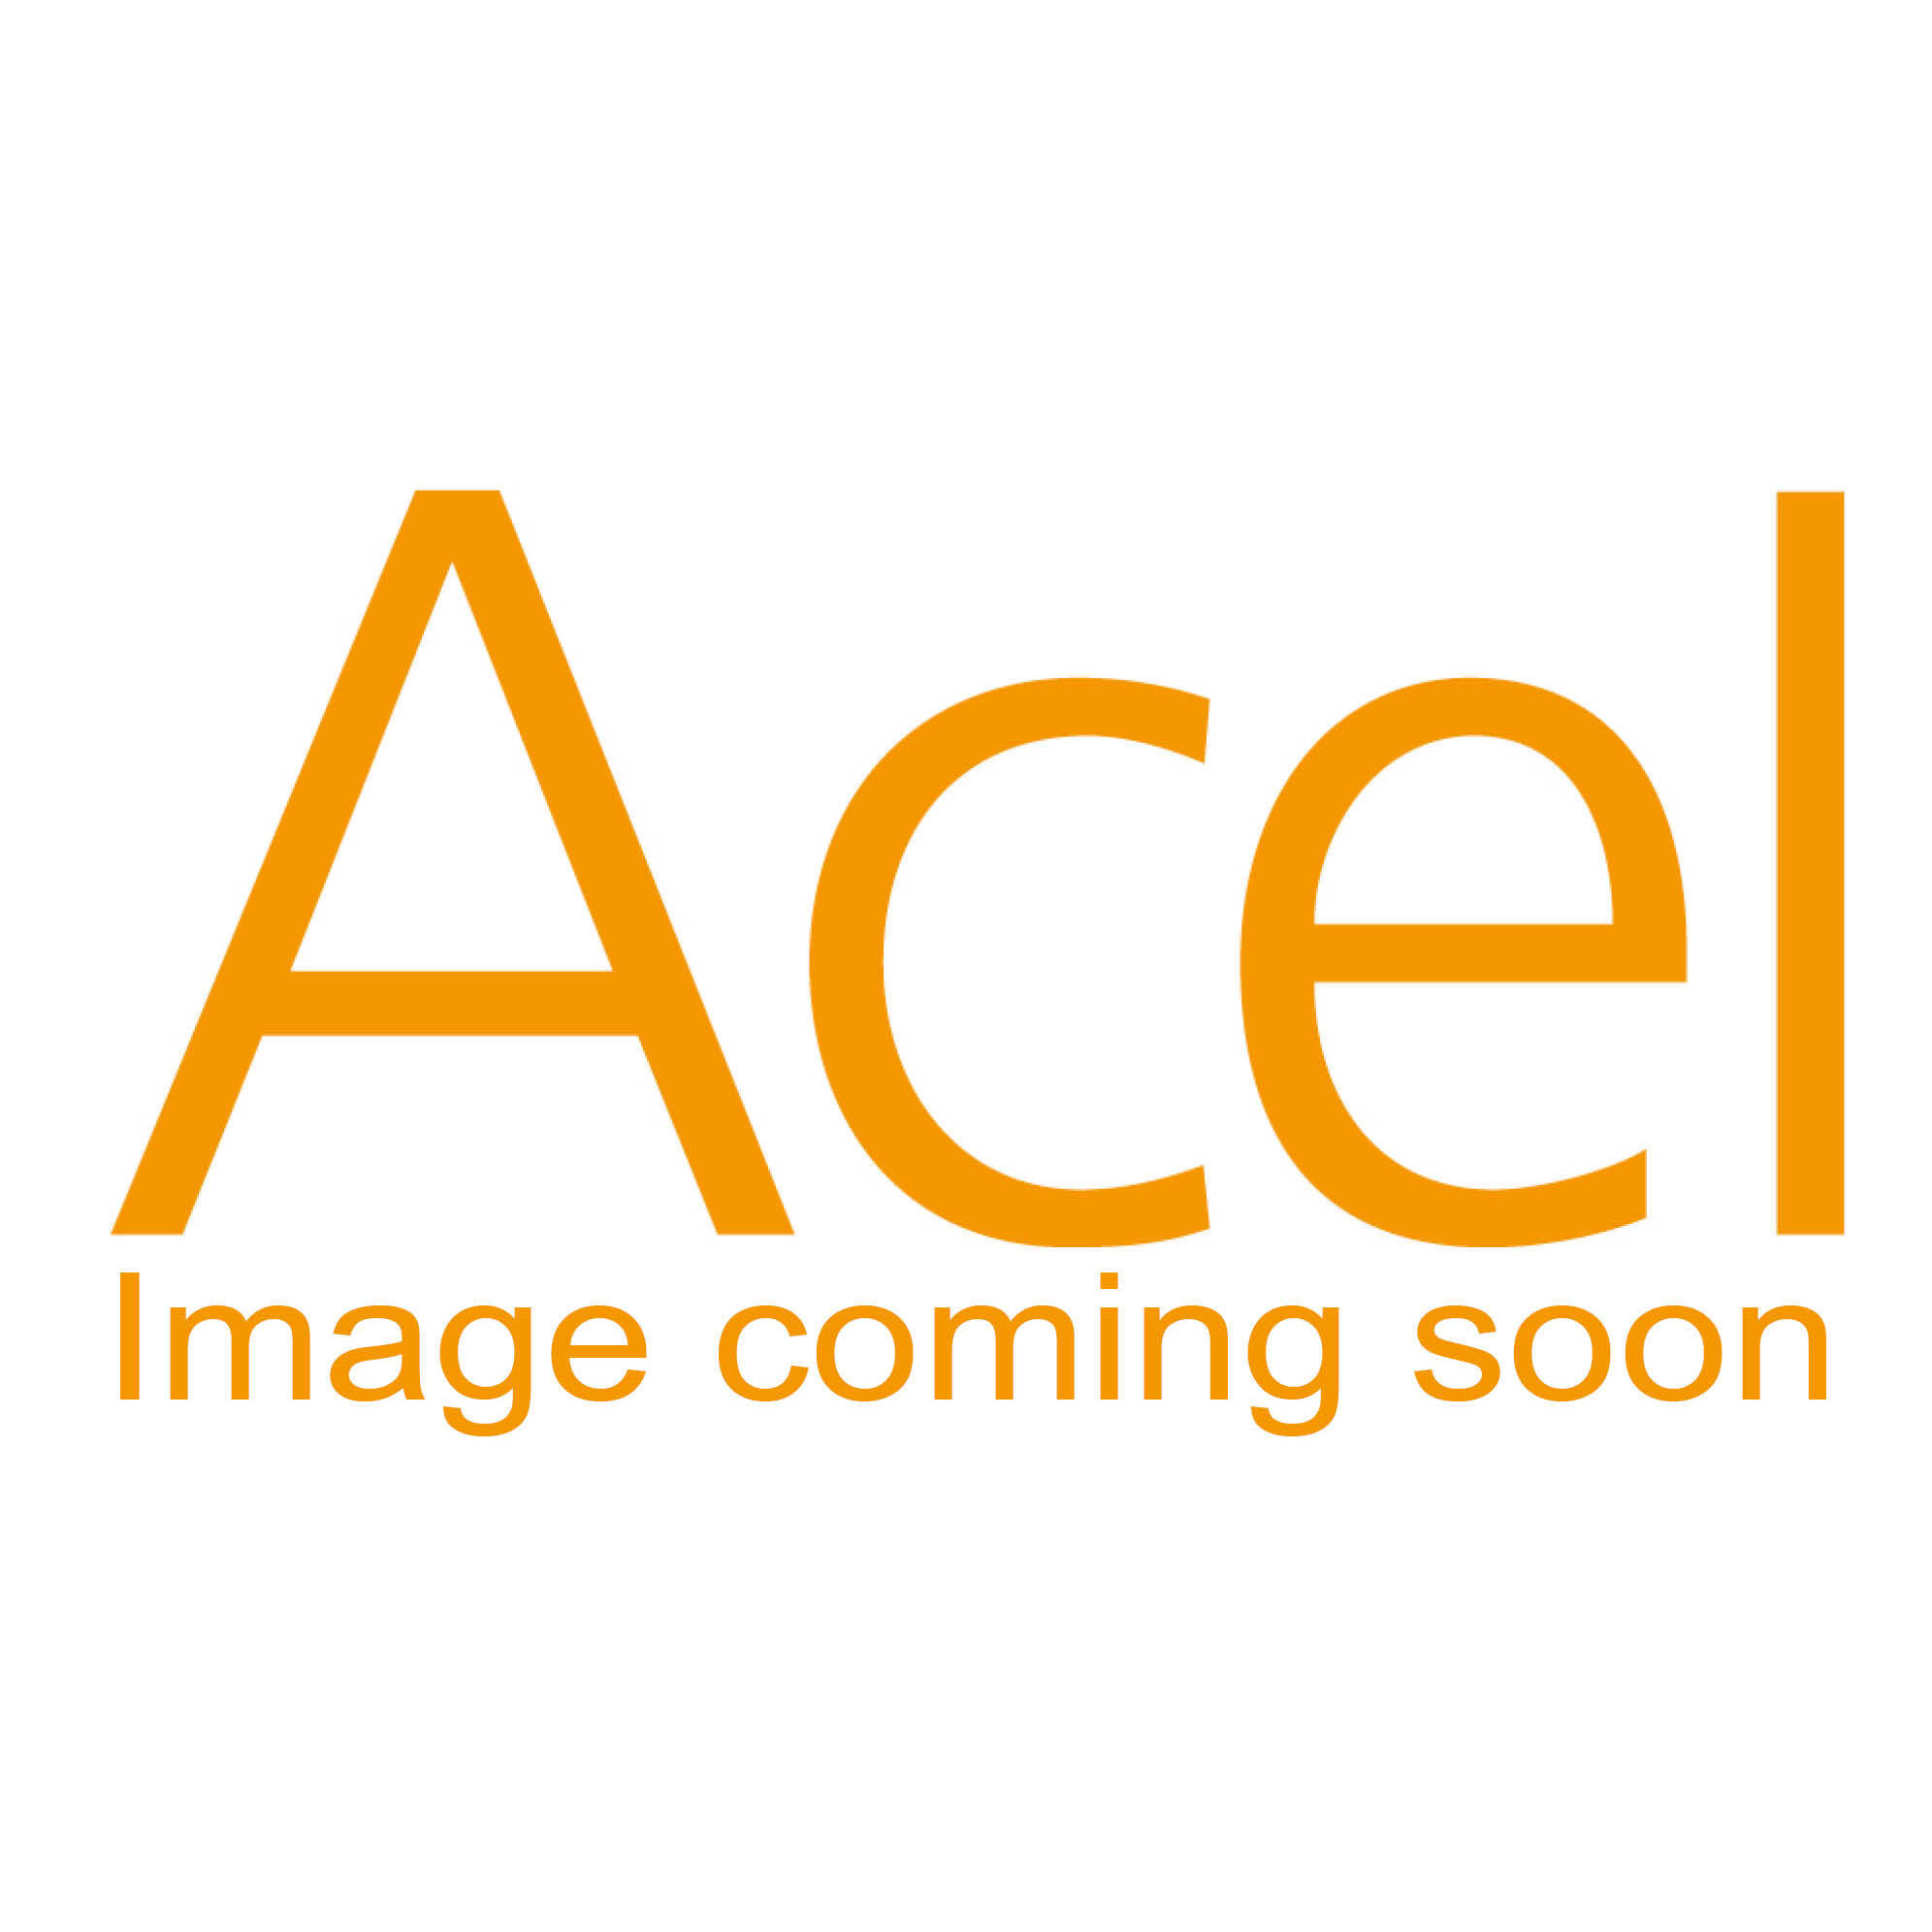 Self Adhesive Vinyl Test and Inspection Labels - Fail test labels small 35 x 15mm Pk50